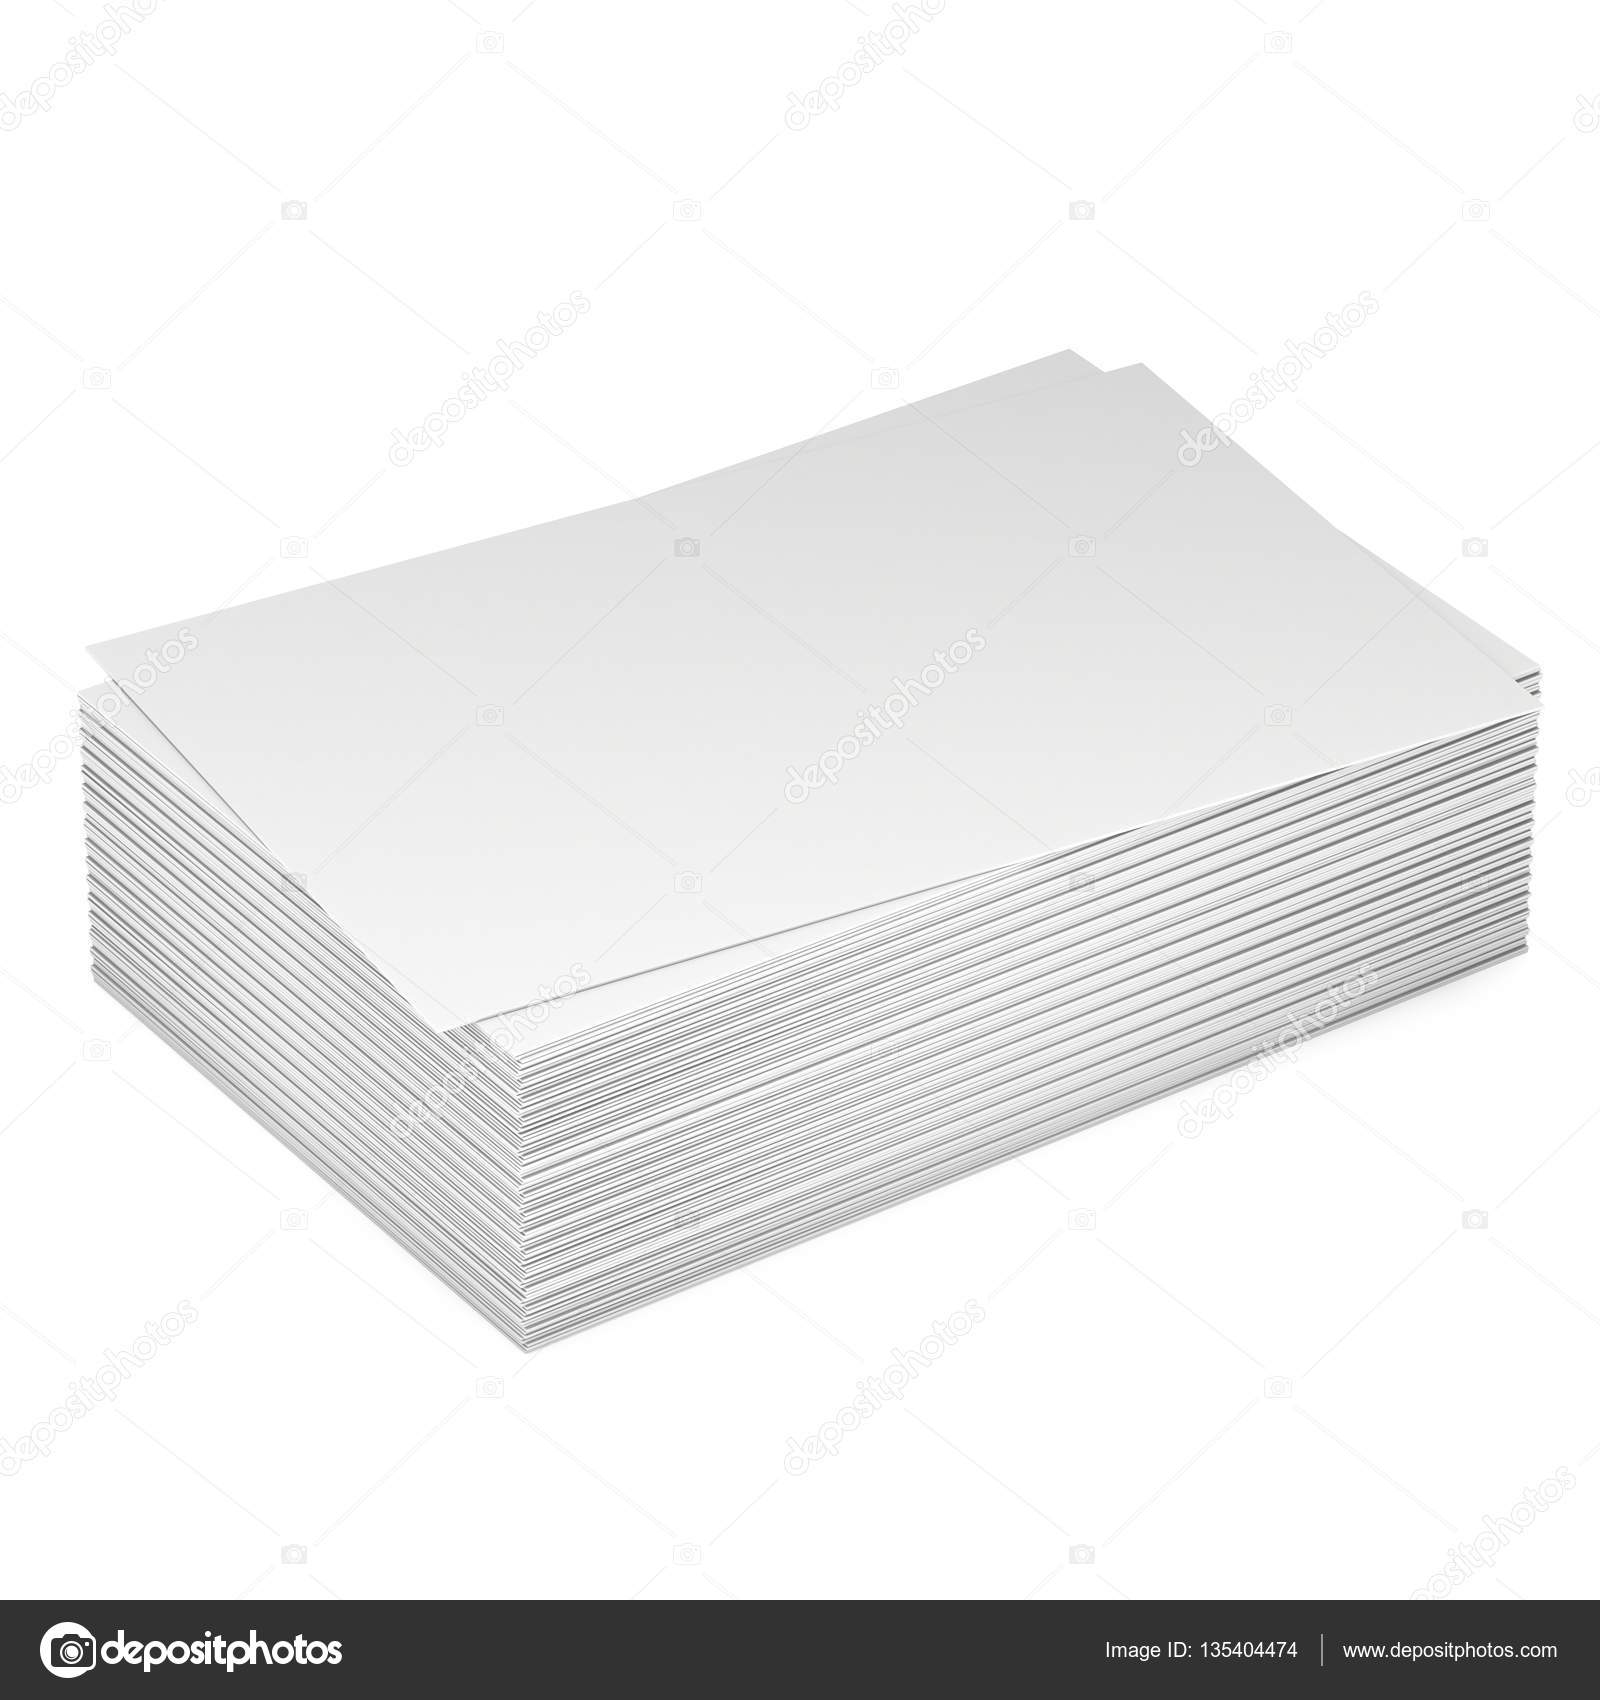 Stack of blank business cards. — Stock Photo © newb1 #135404474